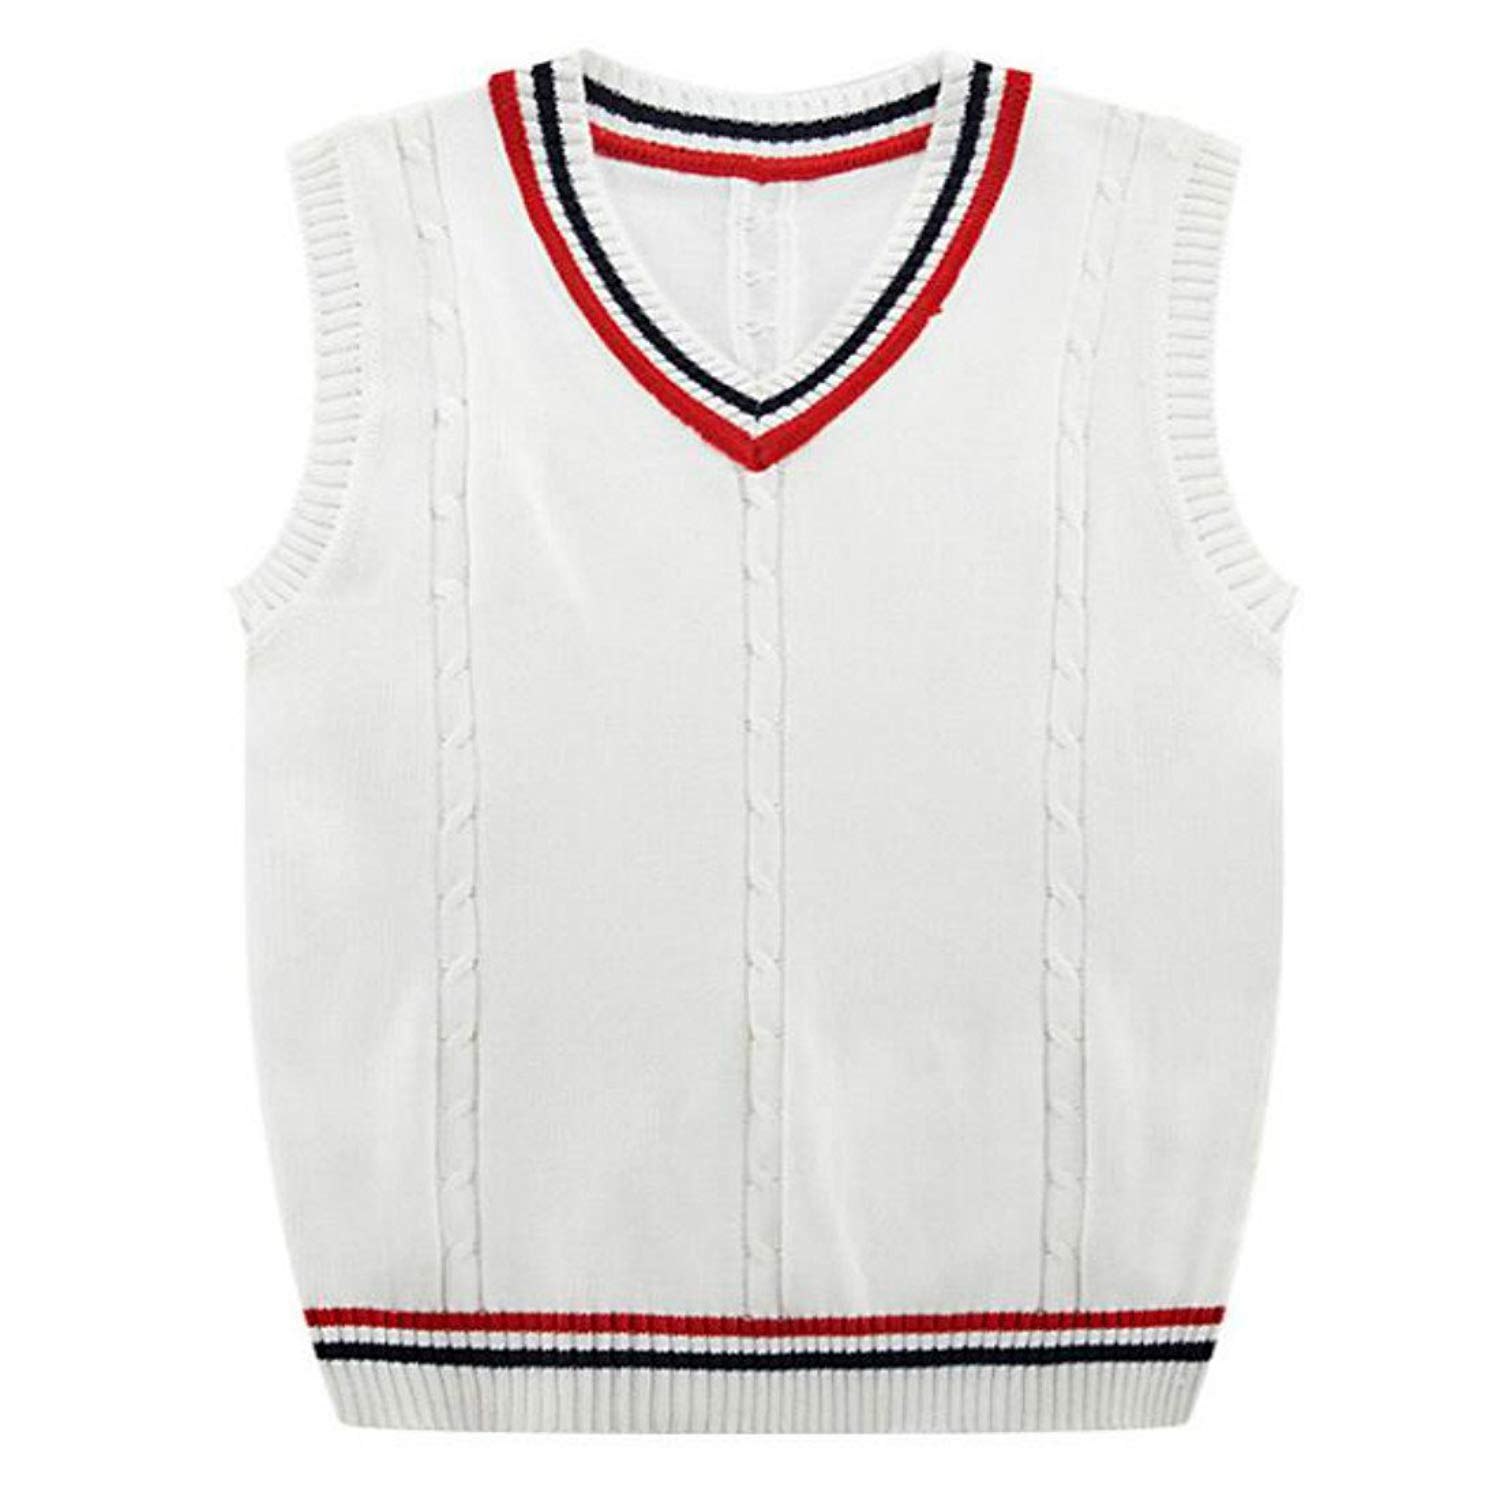 c94dab65d18984 Get Quotations · Colygamala Men s Casual Knitted Regular Fit V Neck Pullover  Casual Sweater Vest 5Color